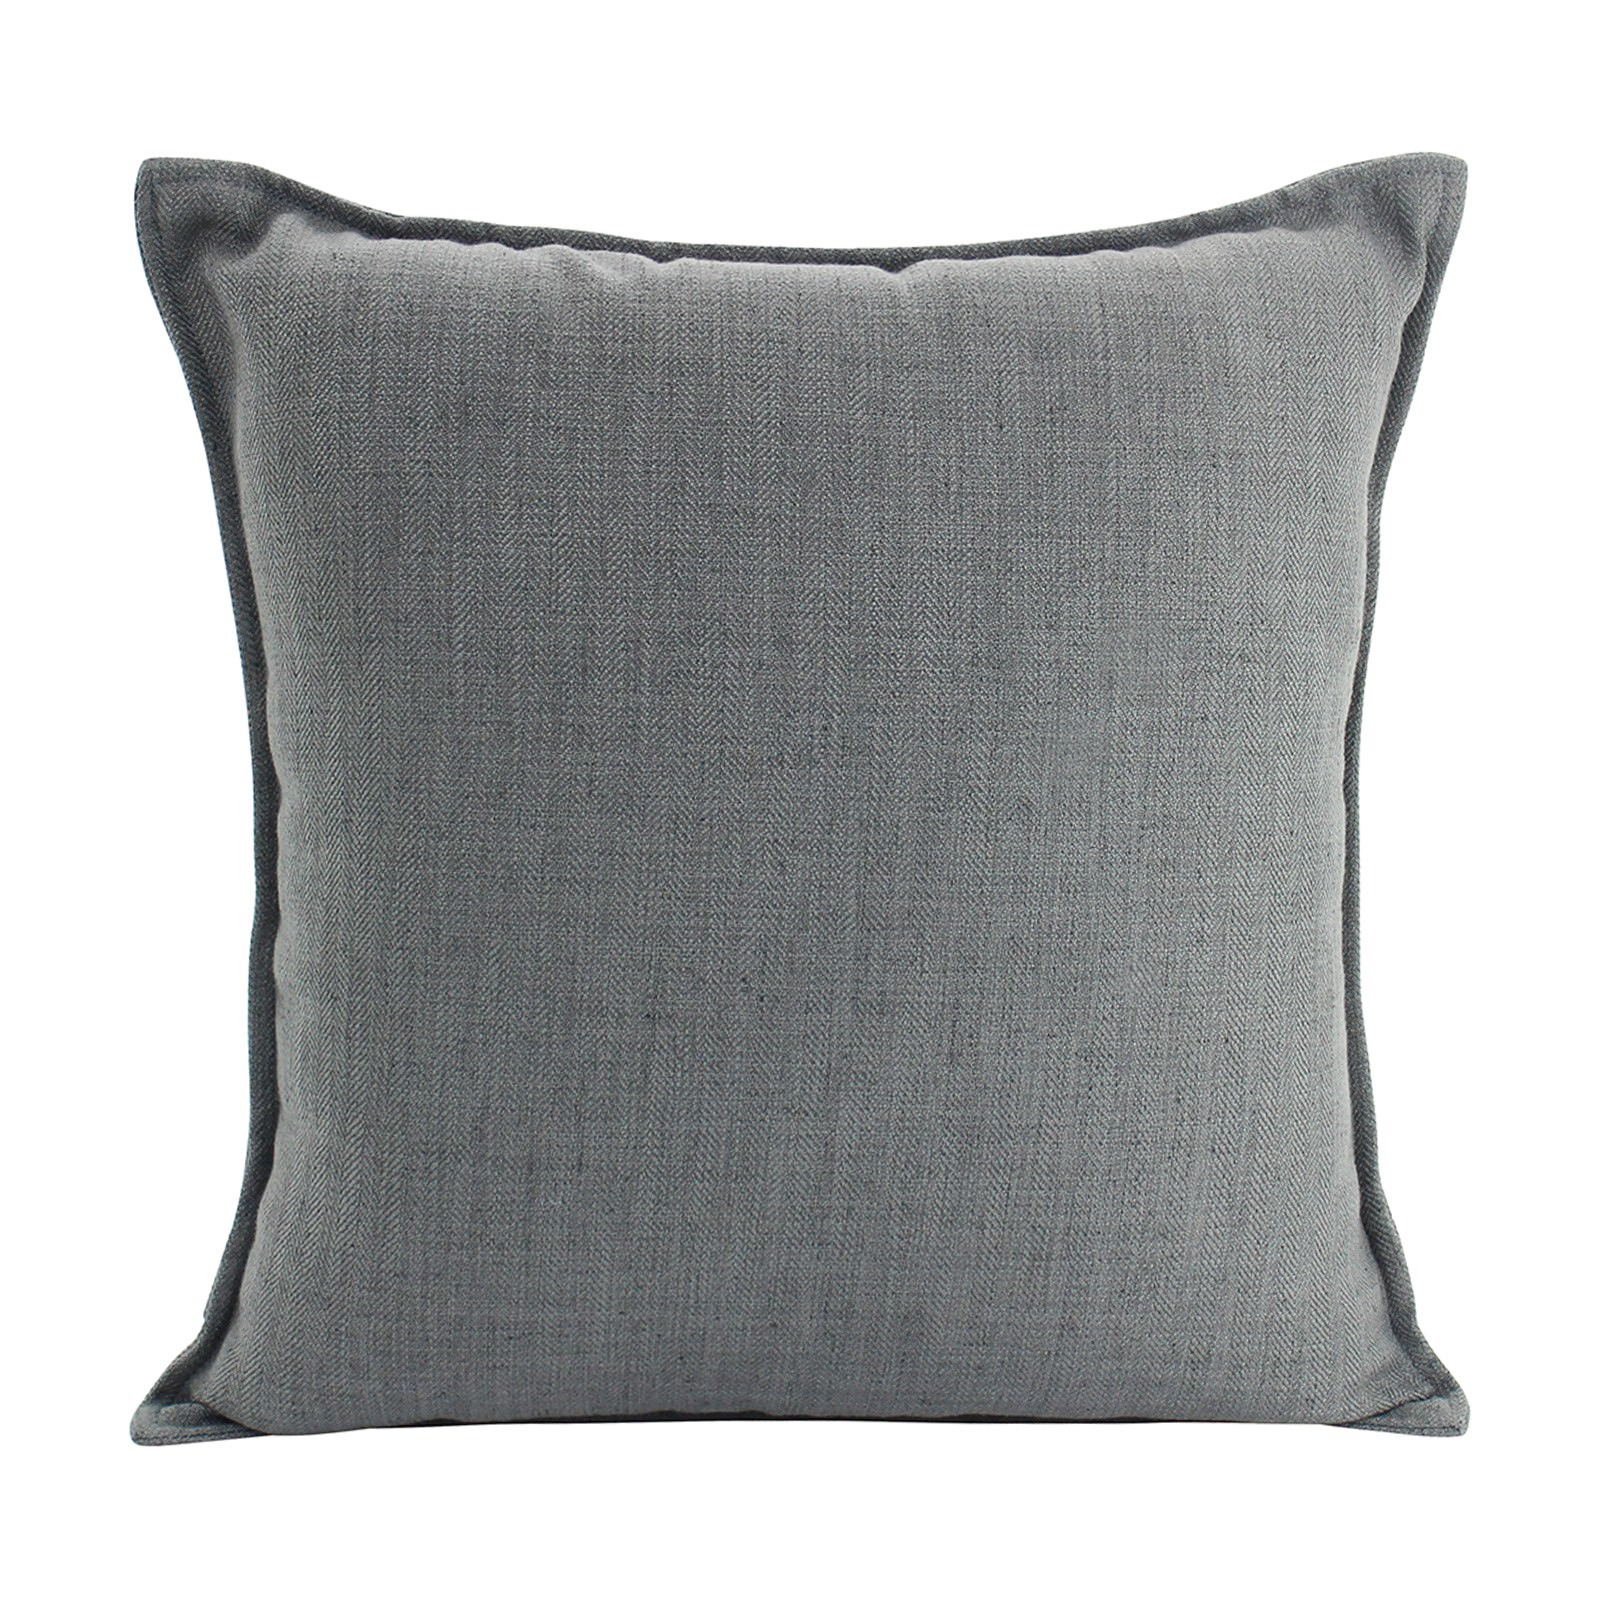 Farra Linen Euro Cushion, Dark Grey